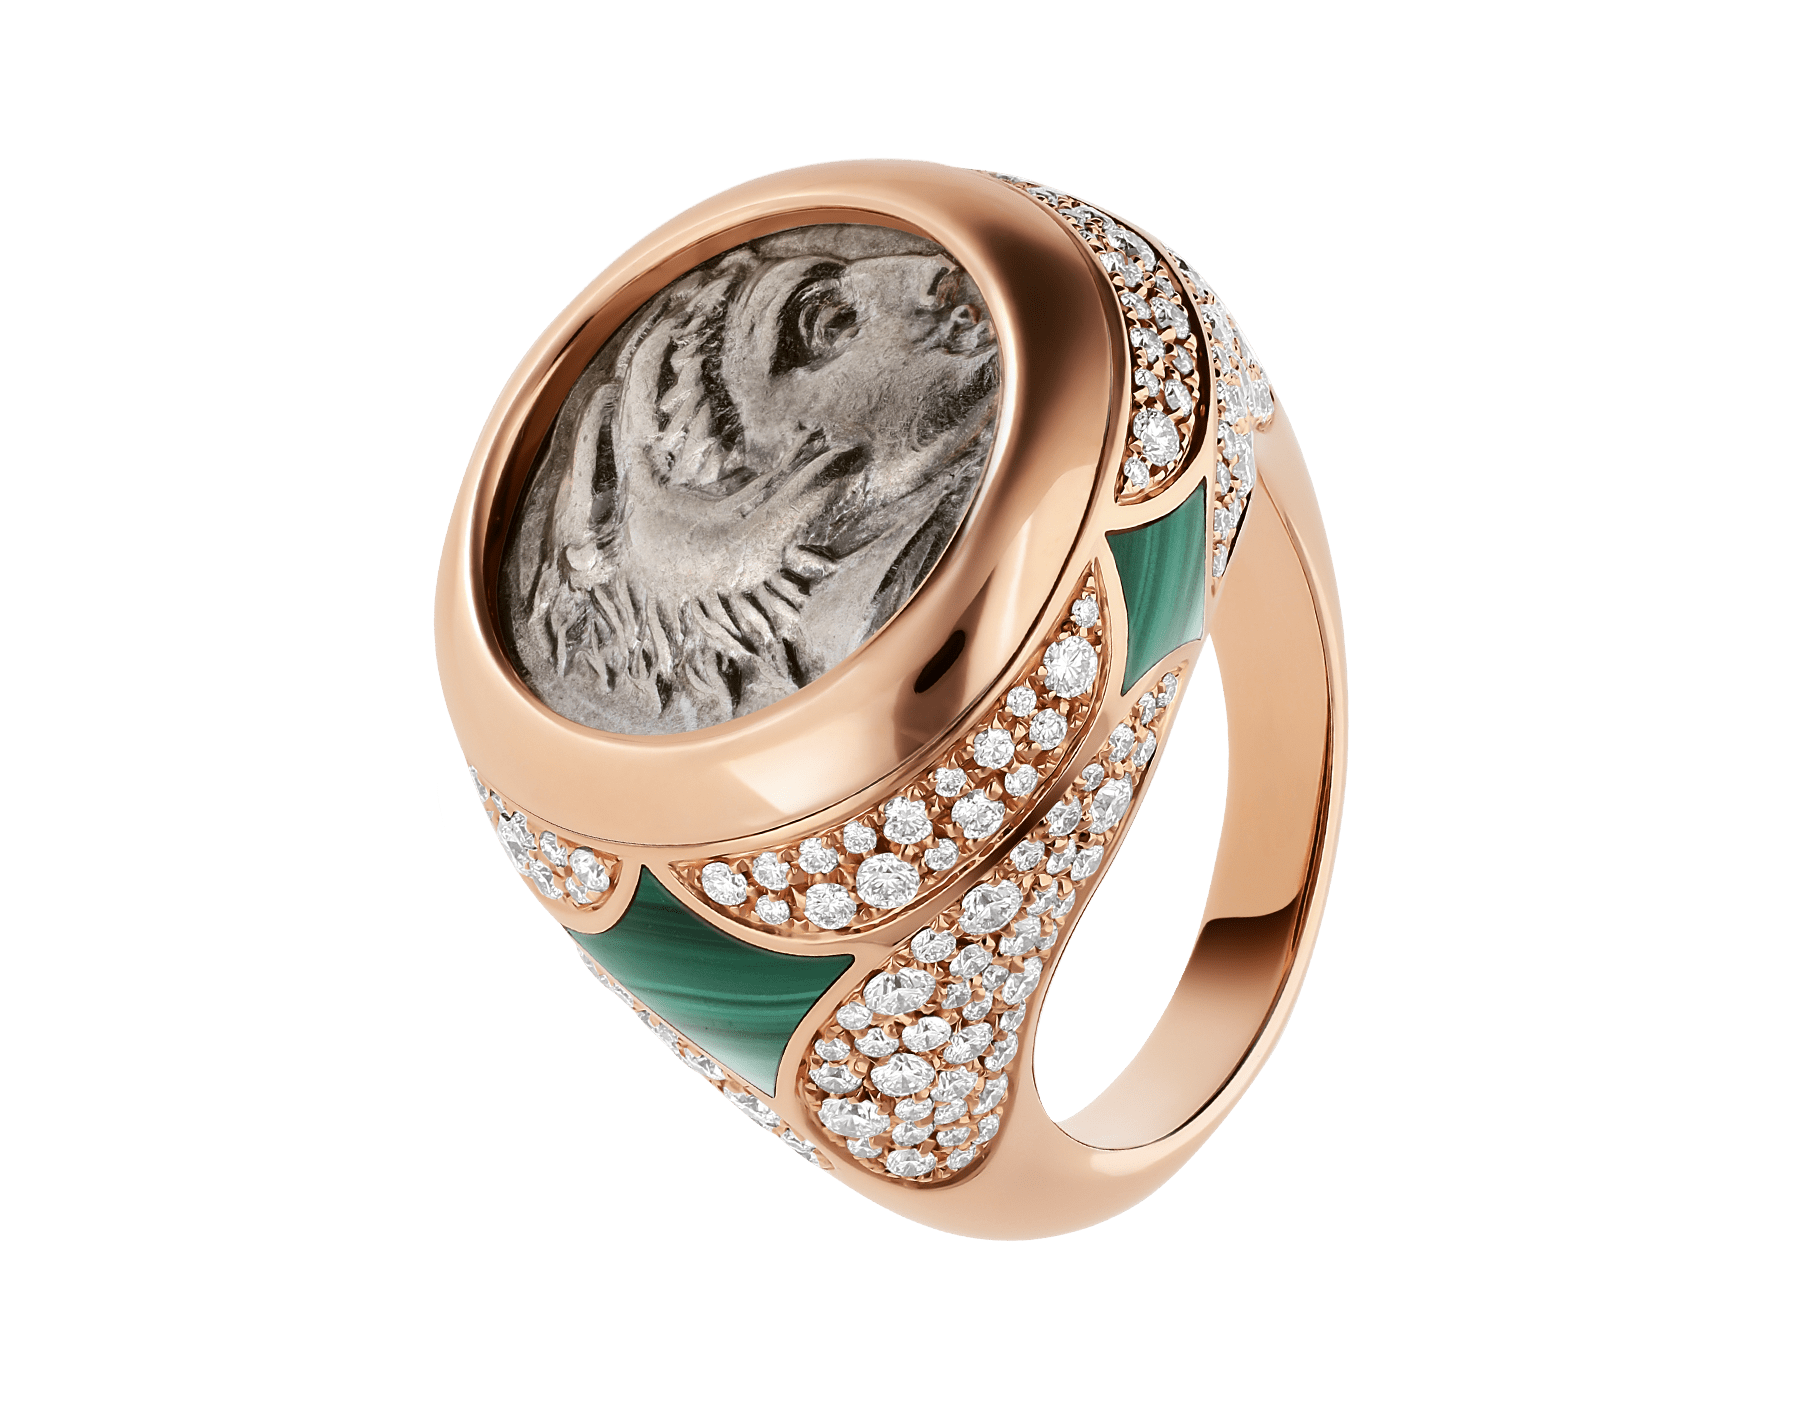 Monete 18 kt rose gold ring set with an ancient coin, malachite elements and pavé diamonds AN858468 image 1